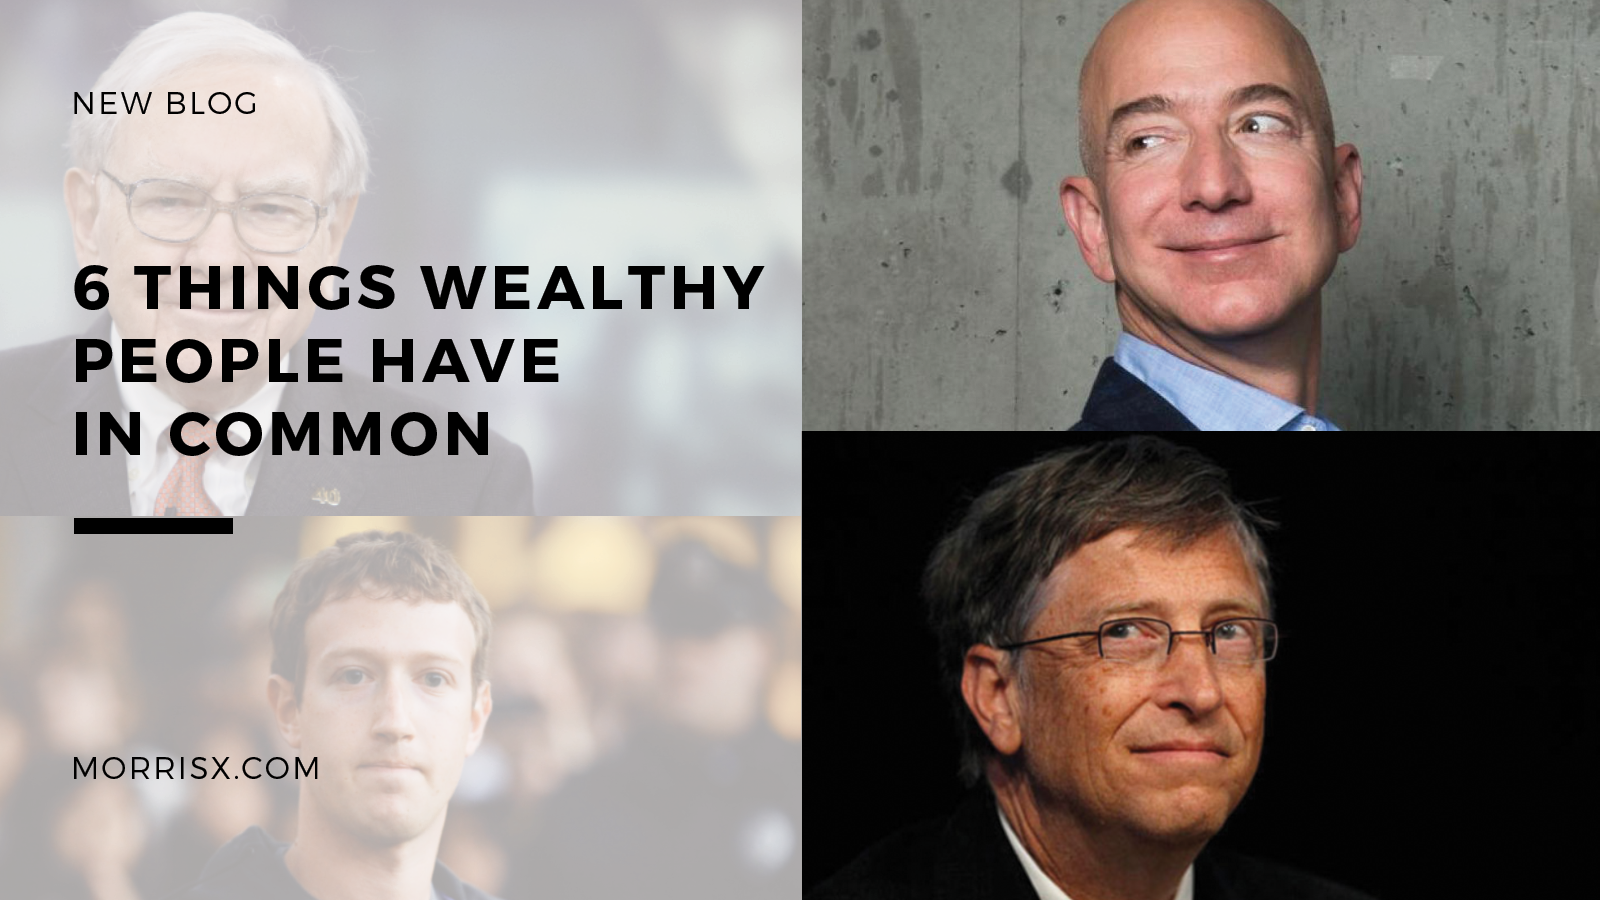 6 Things Wealthy People Have in Common